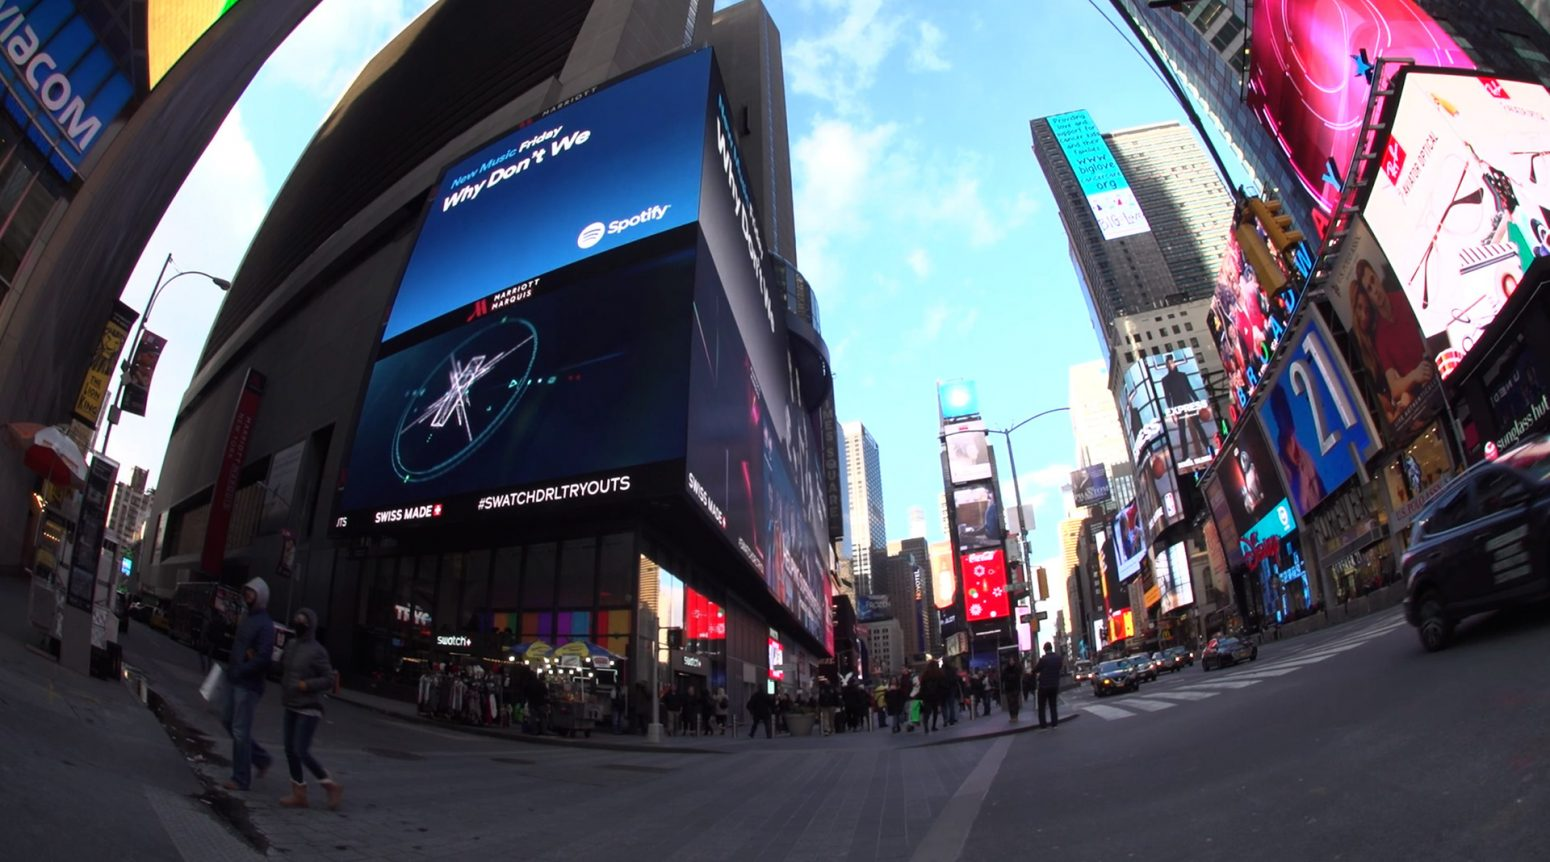 drl fpv drone racing times square